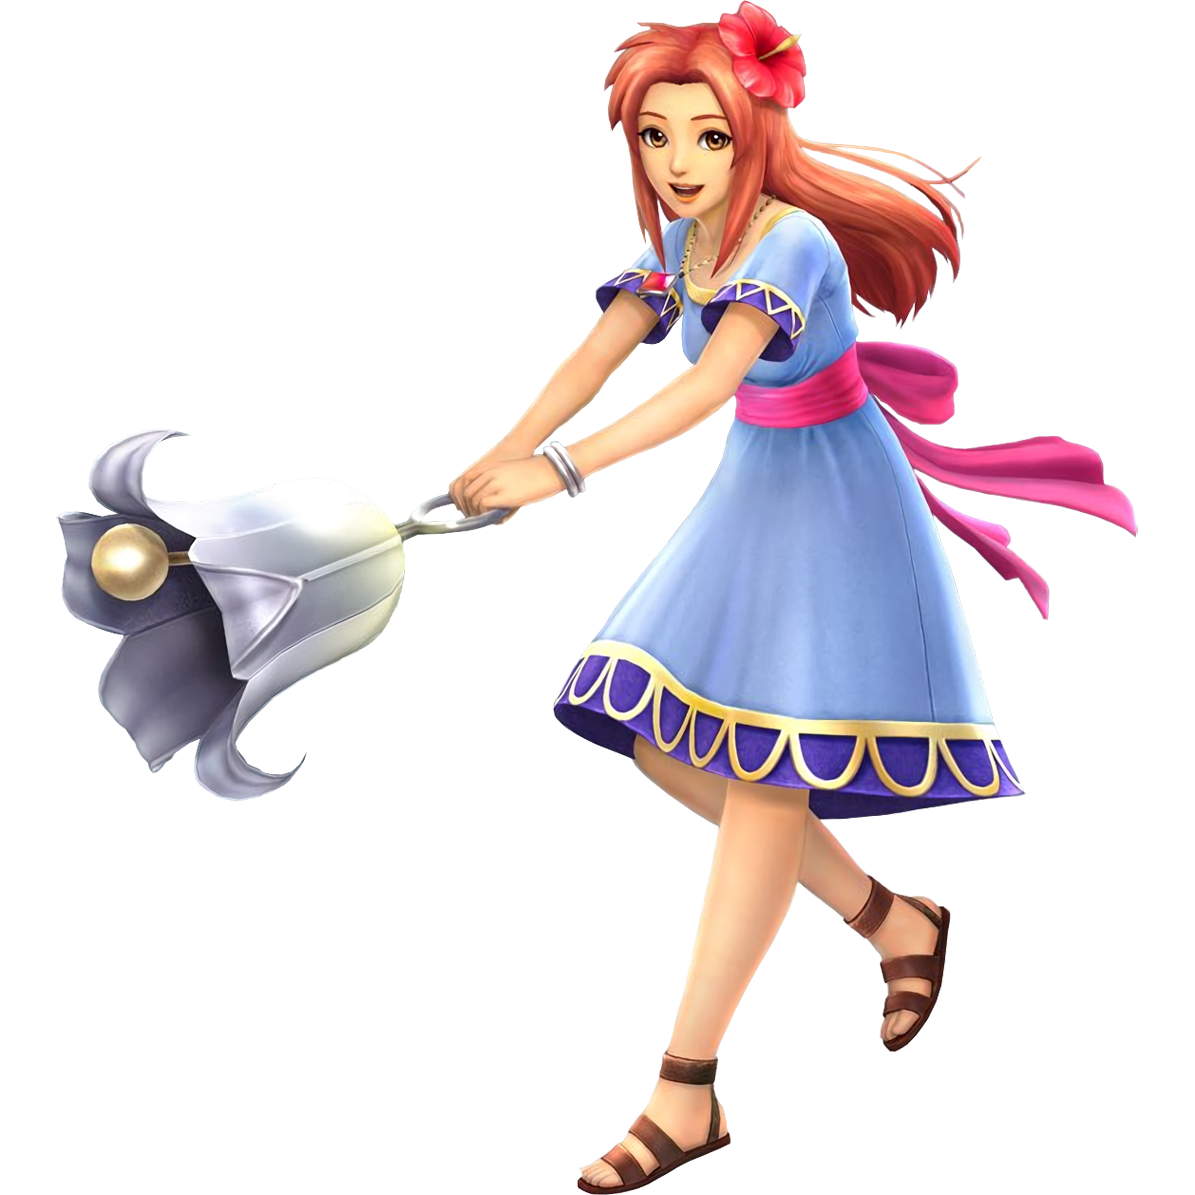 Bell Hyrule Warriors Zeldapedia Fandom Powered By Wikia